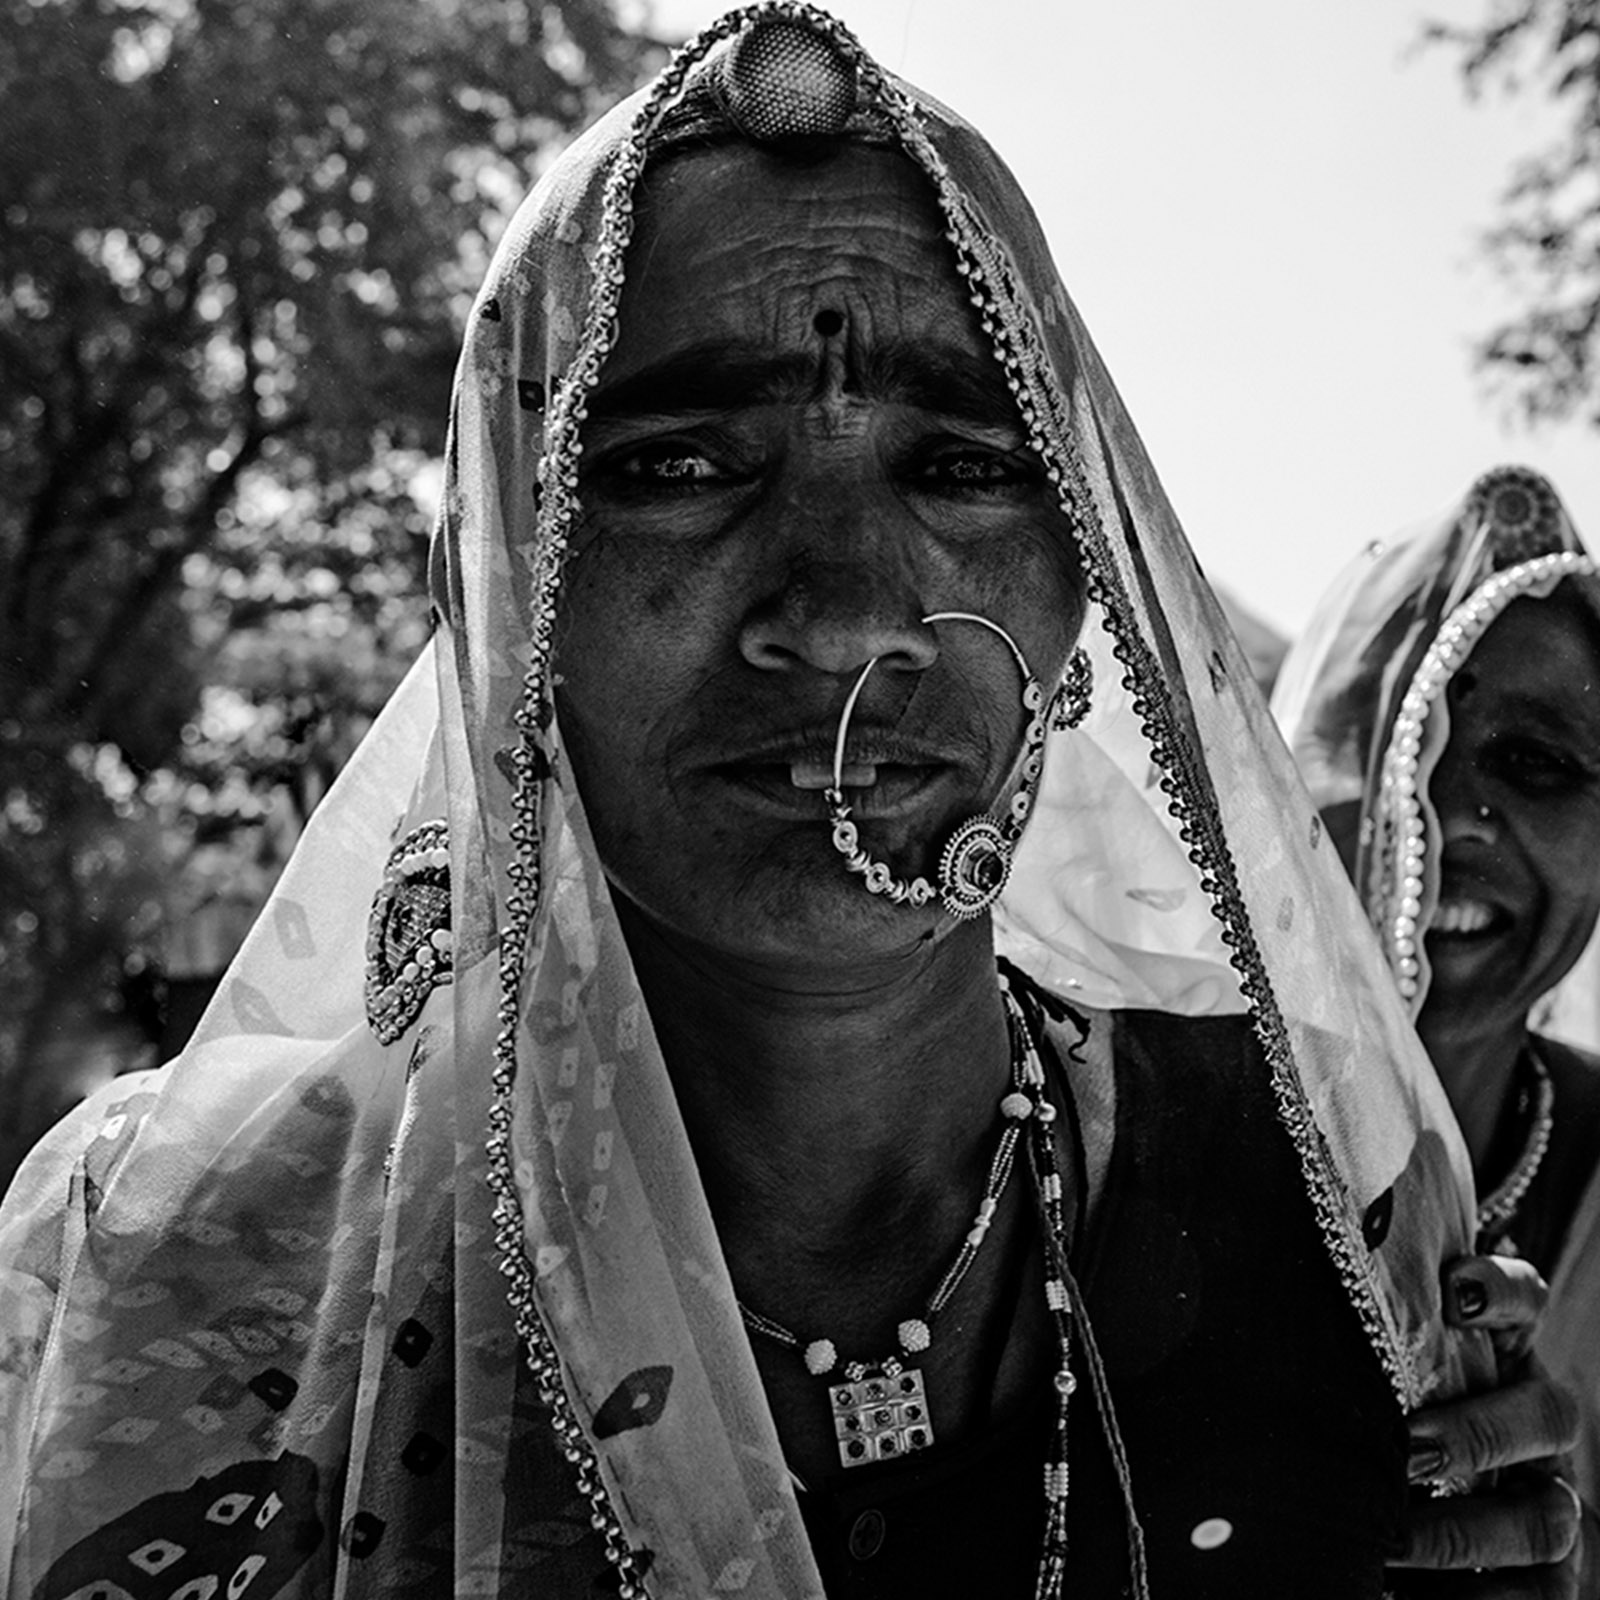 Black and White Portrait of an Indian Woman with a Nose Ring.